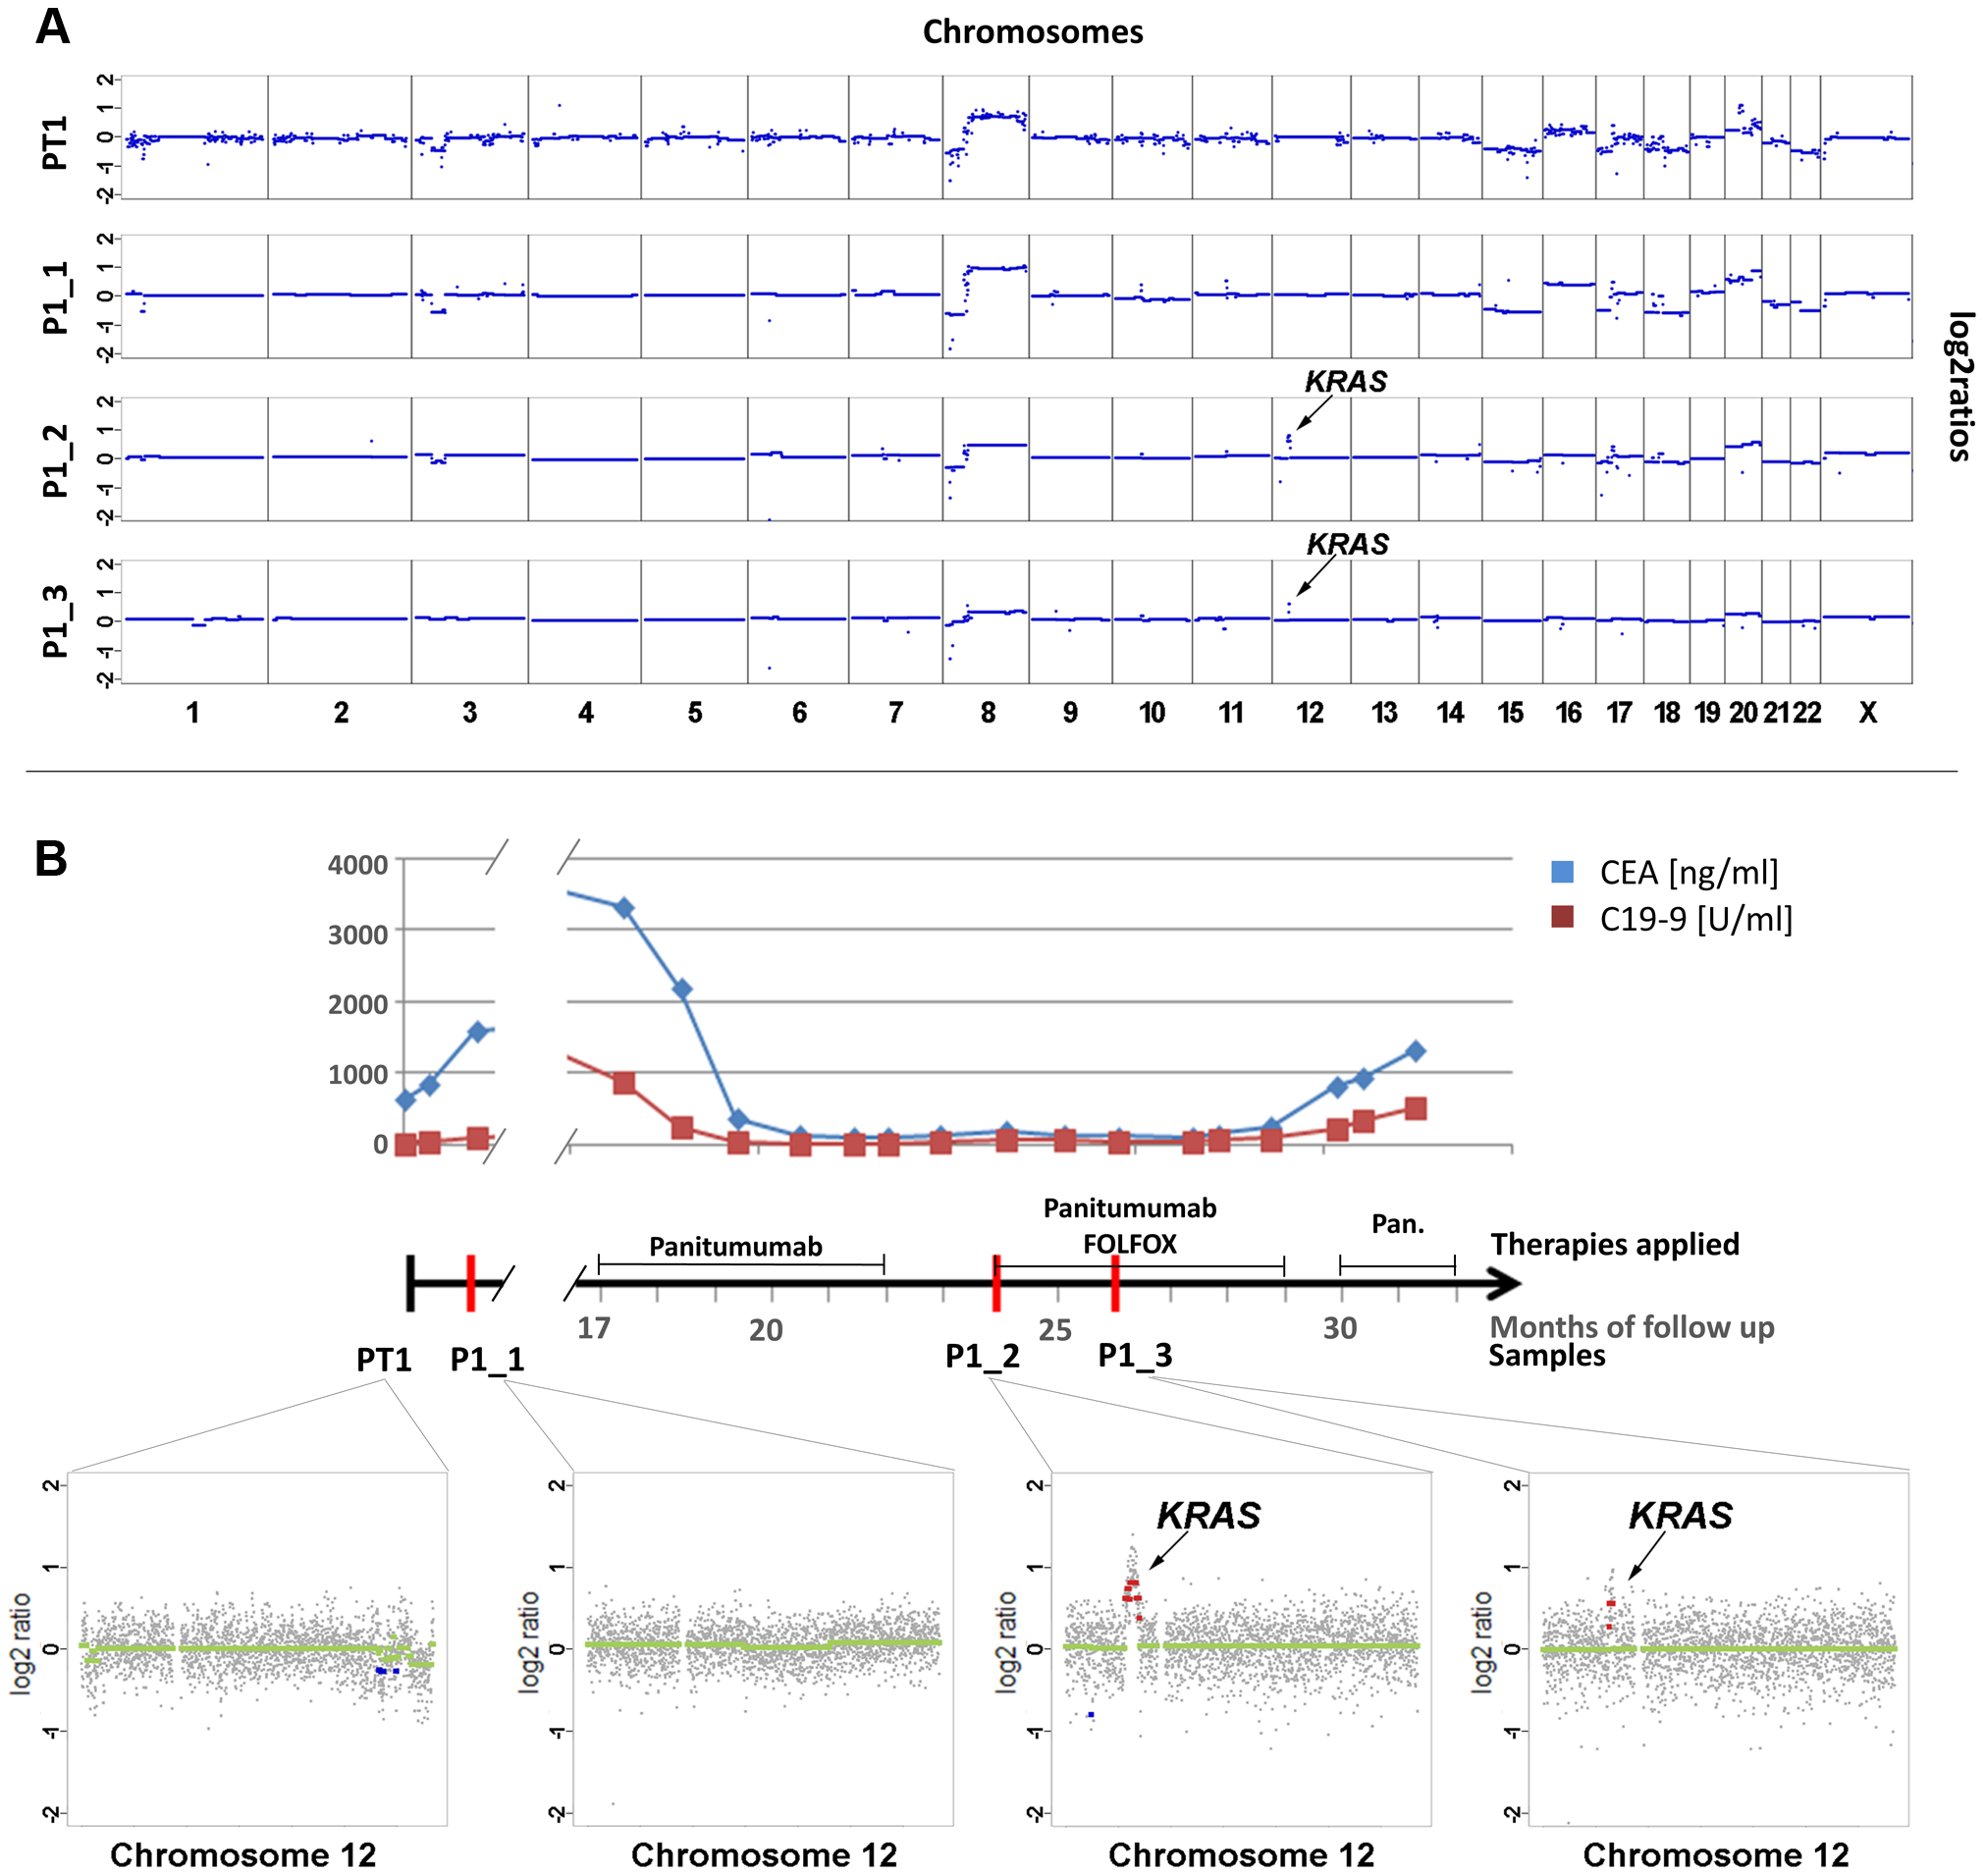 Emergence of <i>KRAS</i> amplification during panitumumab therapy in patient #1.